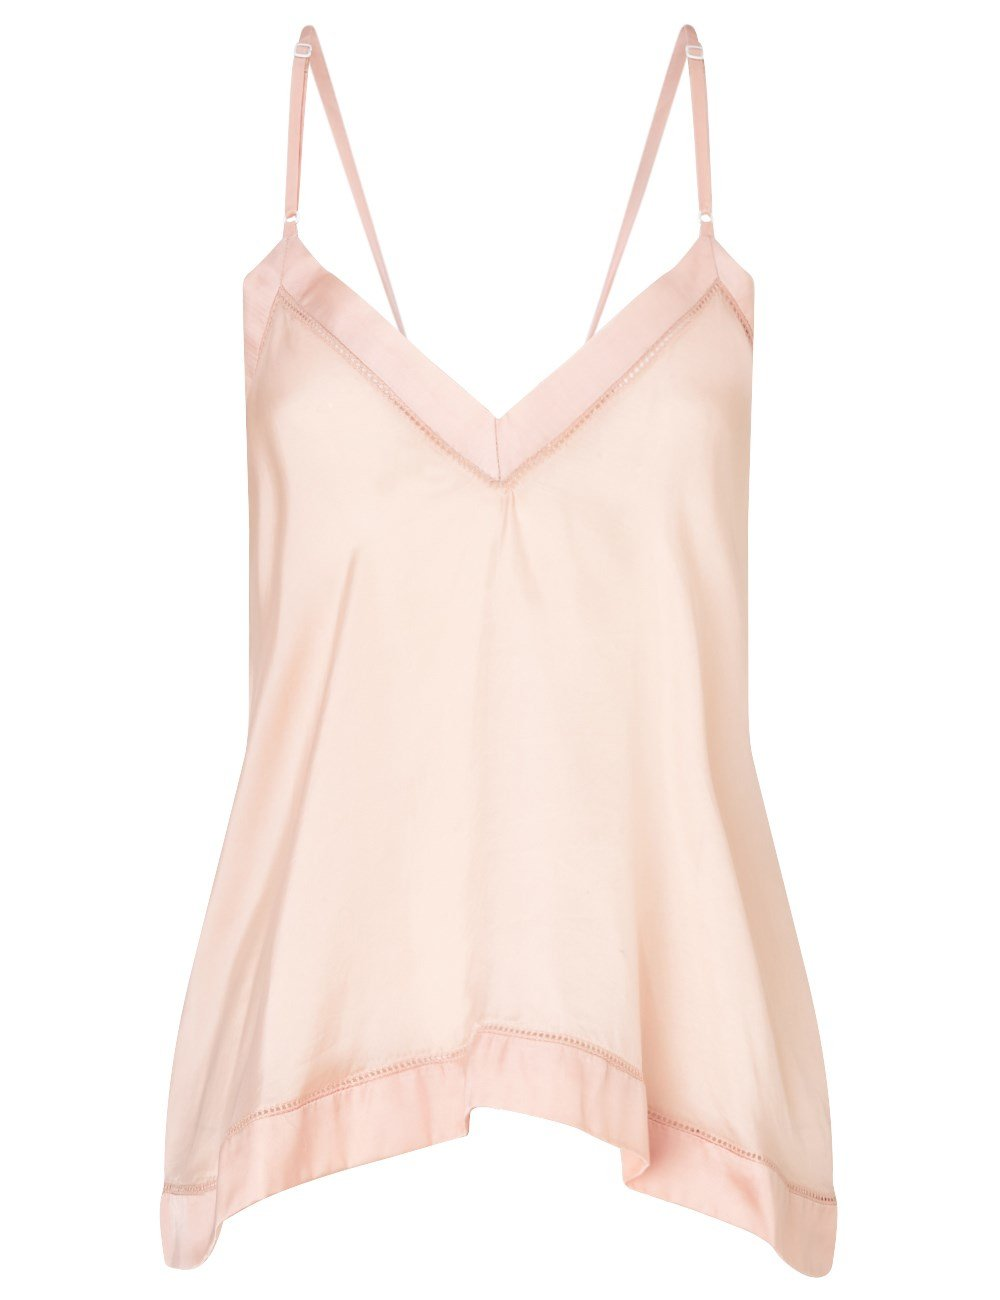 Shop pink cami at Neiman Marcus, where you will find free shipping on the latest in fashion from top designers. Skip To Main Content. Available in Light Pink, White Pattern. More Details Cami NYC The Racer Silk Charmeuse Camisole w/ Lace Details Cami NYC silk charmeuse tank with lace trim. V neckline. Delicate straps.